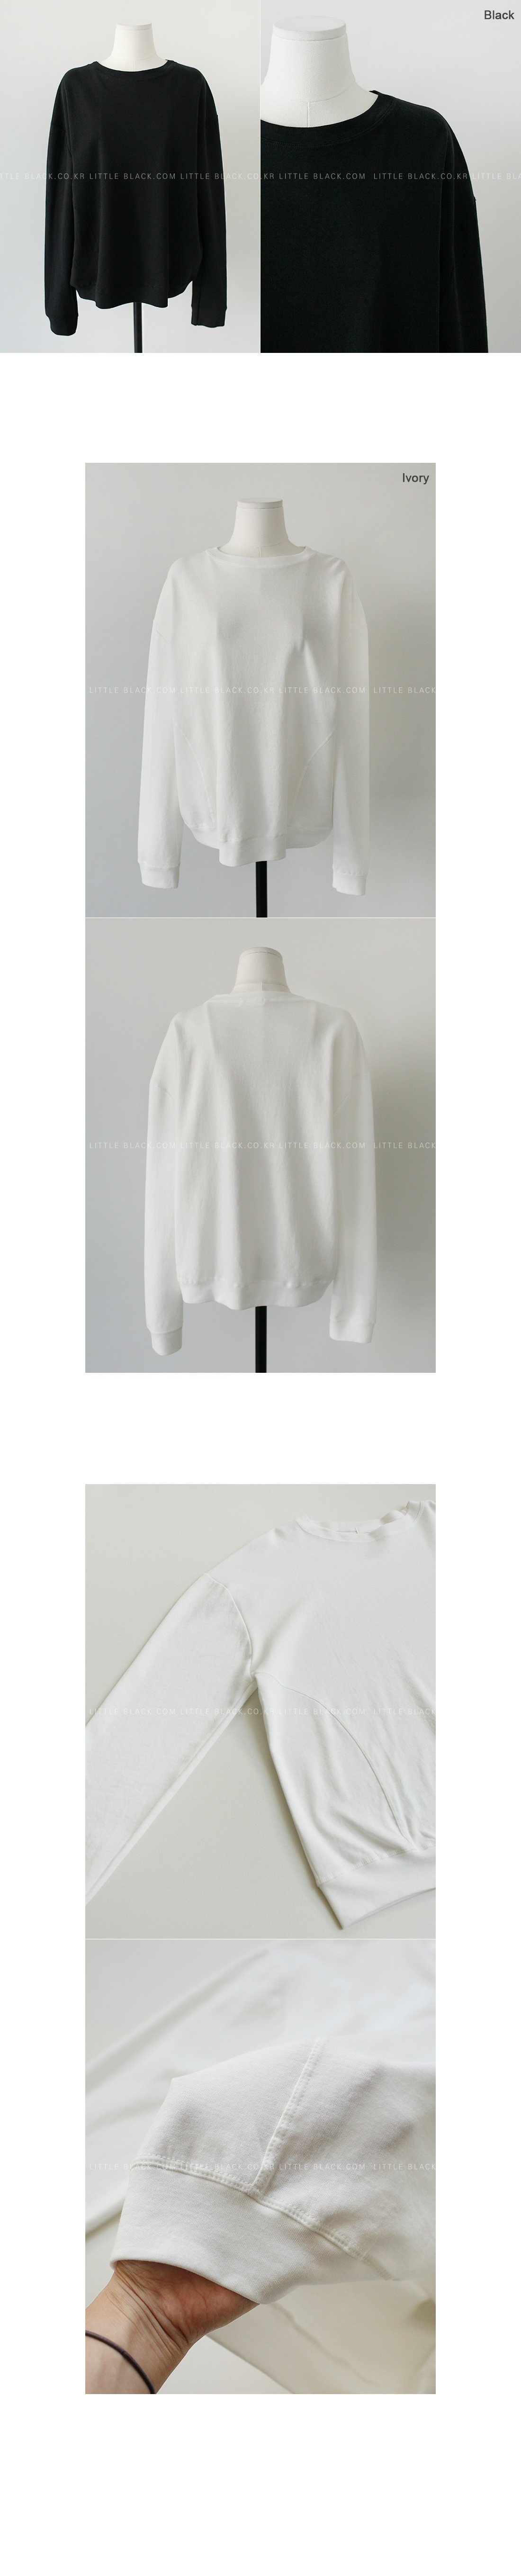 Cotton Blend Sweatshirt|